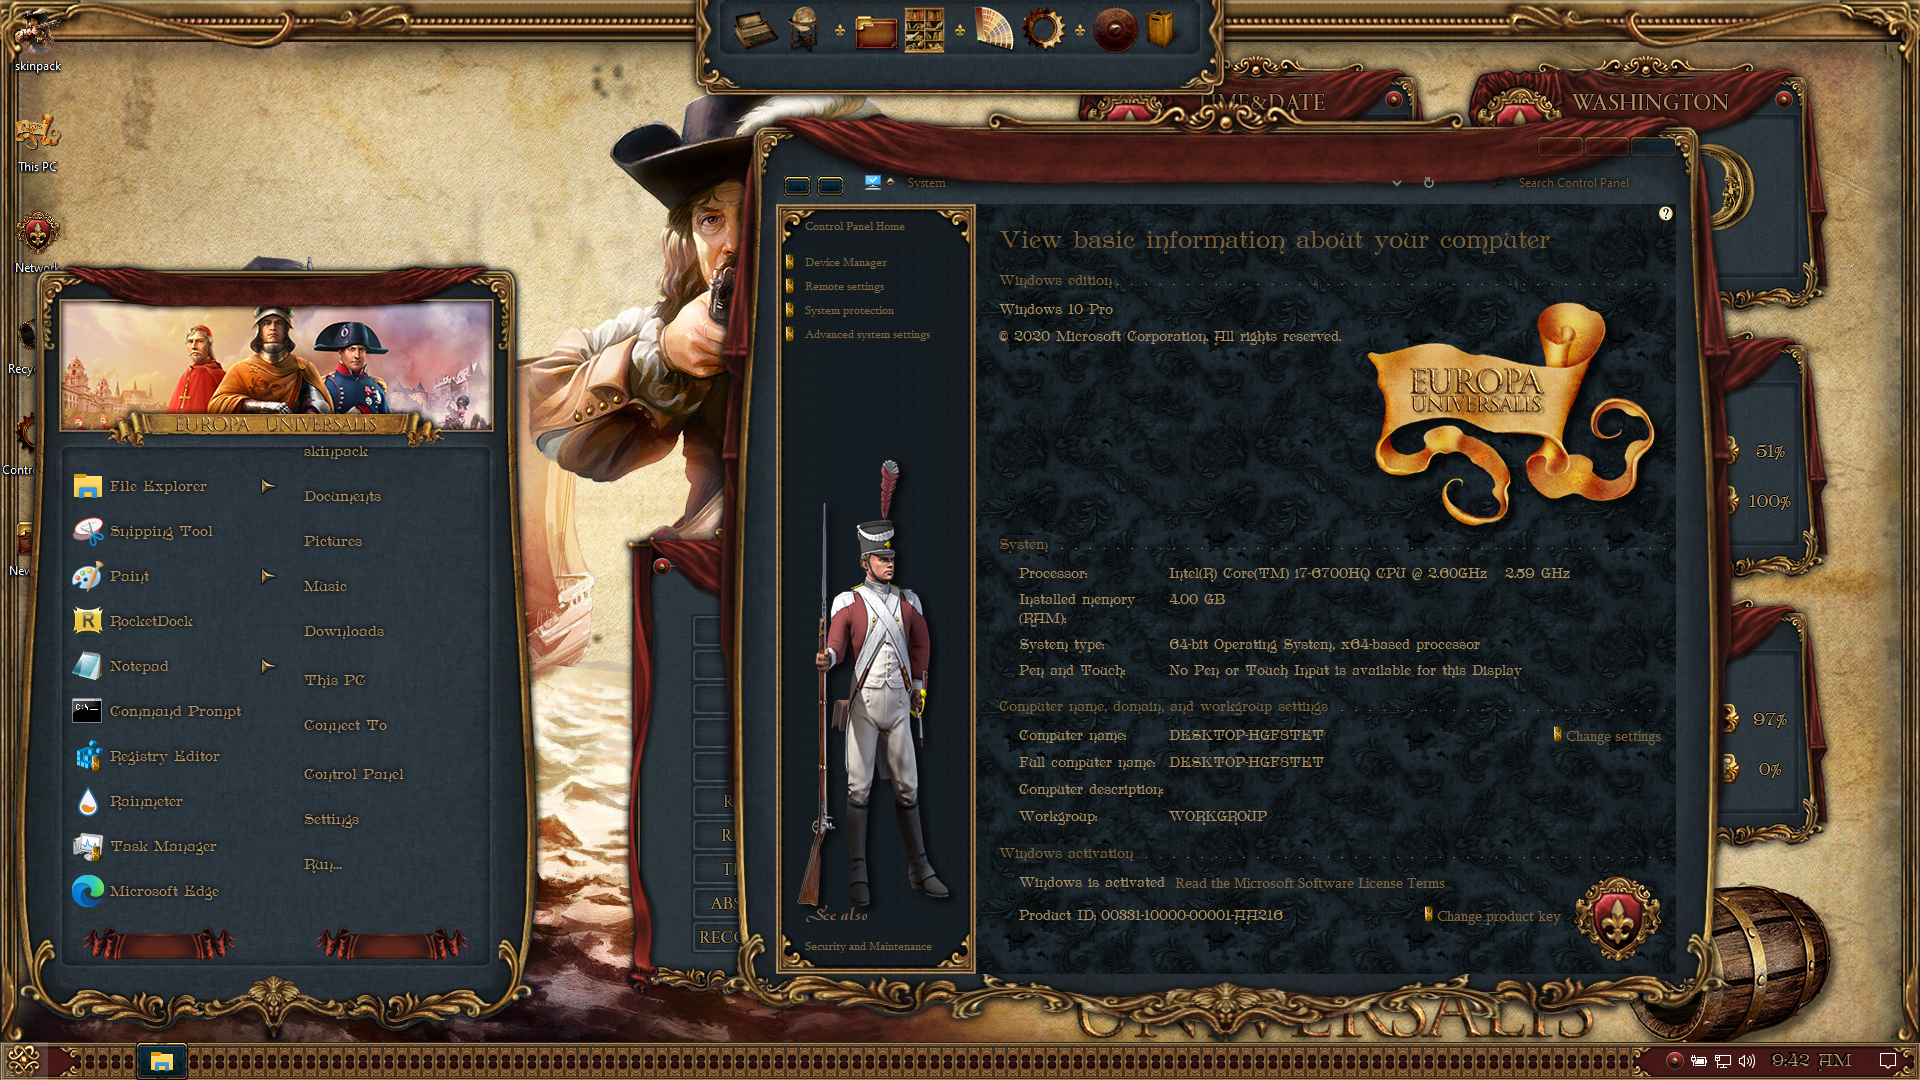 EUROPA UNIVERSALIS Premium SkinPack for Windows 10